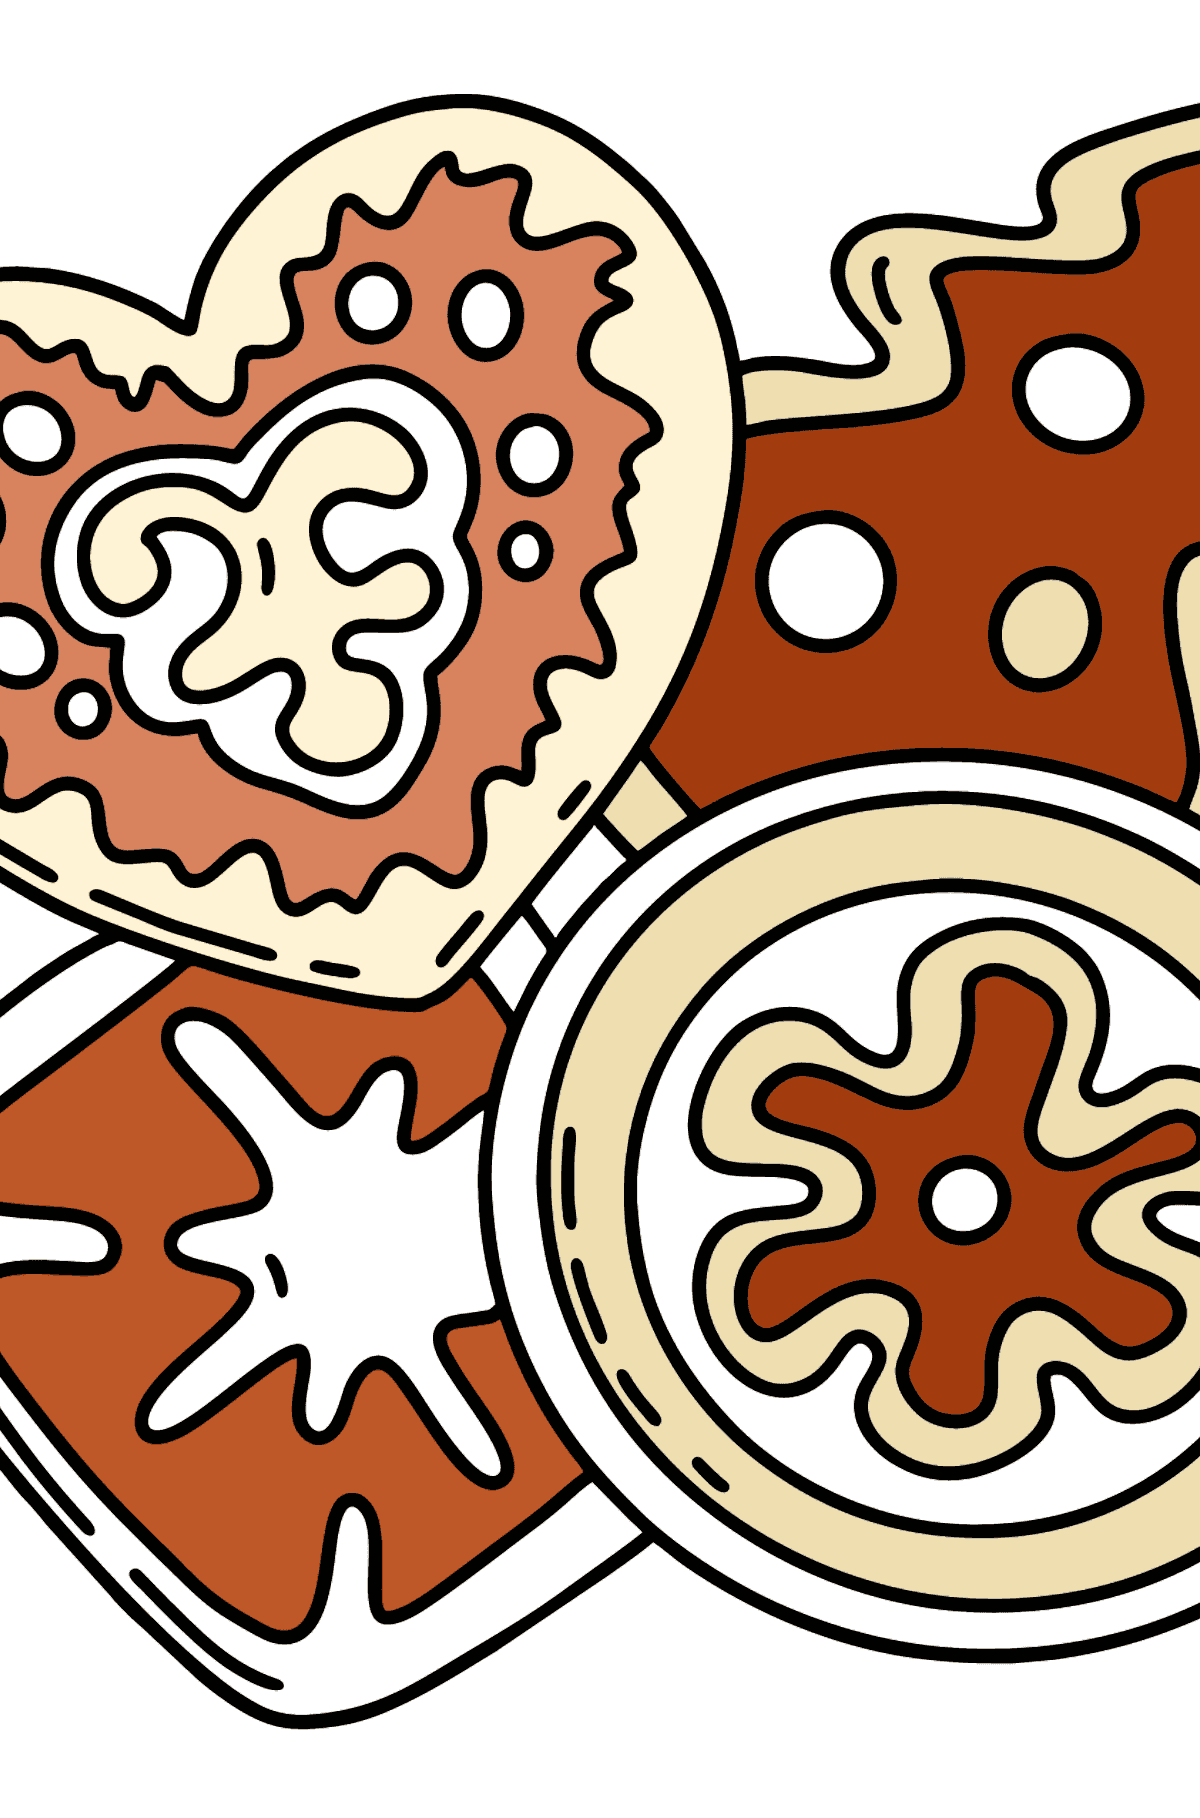 Christmas Cookies coloring page - Coloring Pages for Kids